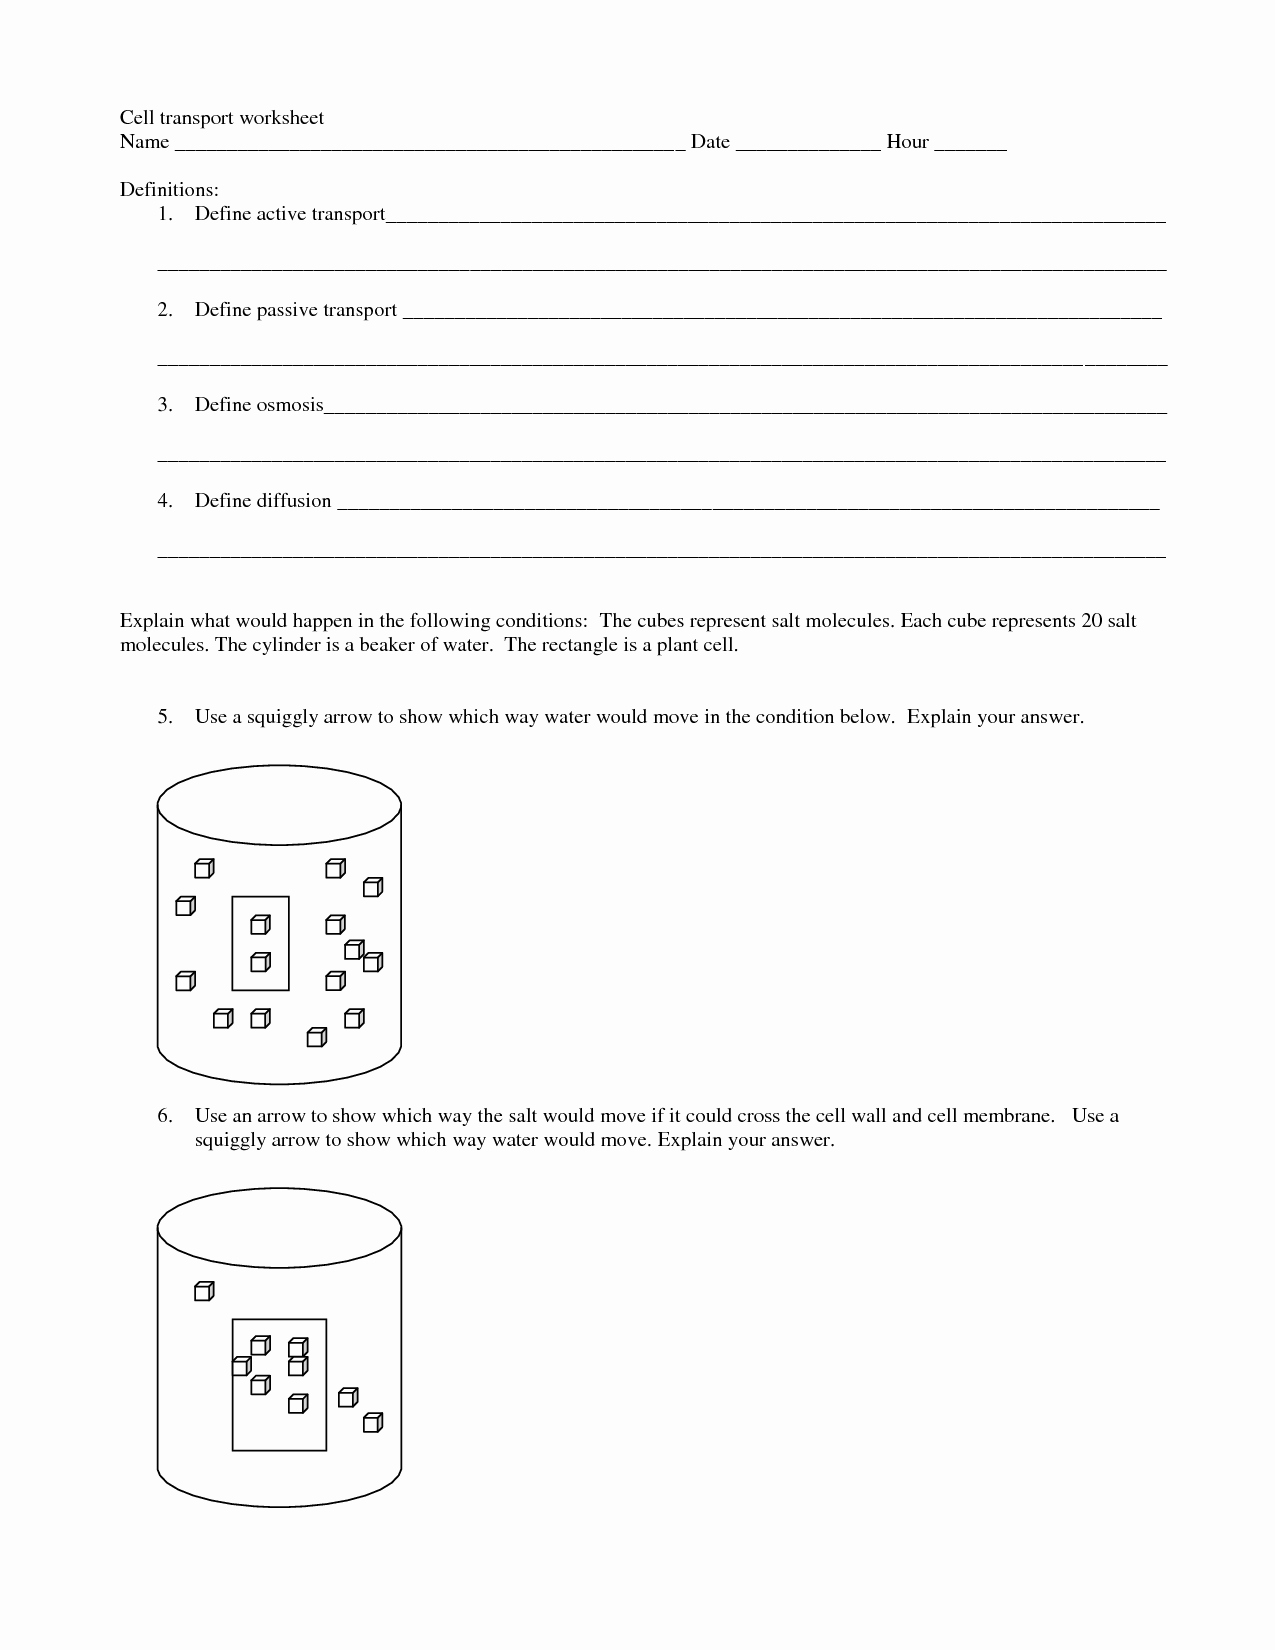 Passive Transport Worksheet Answers Lovely 7 Best Of Active and Passive Transport Worksheet